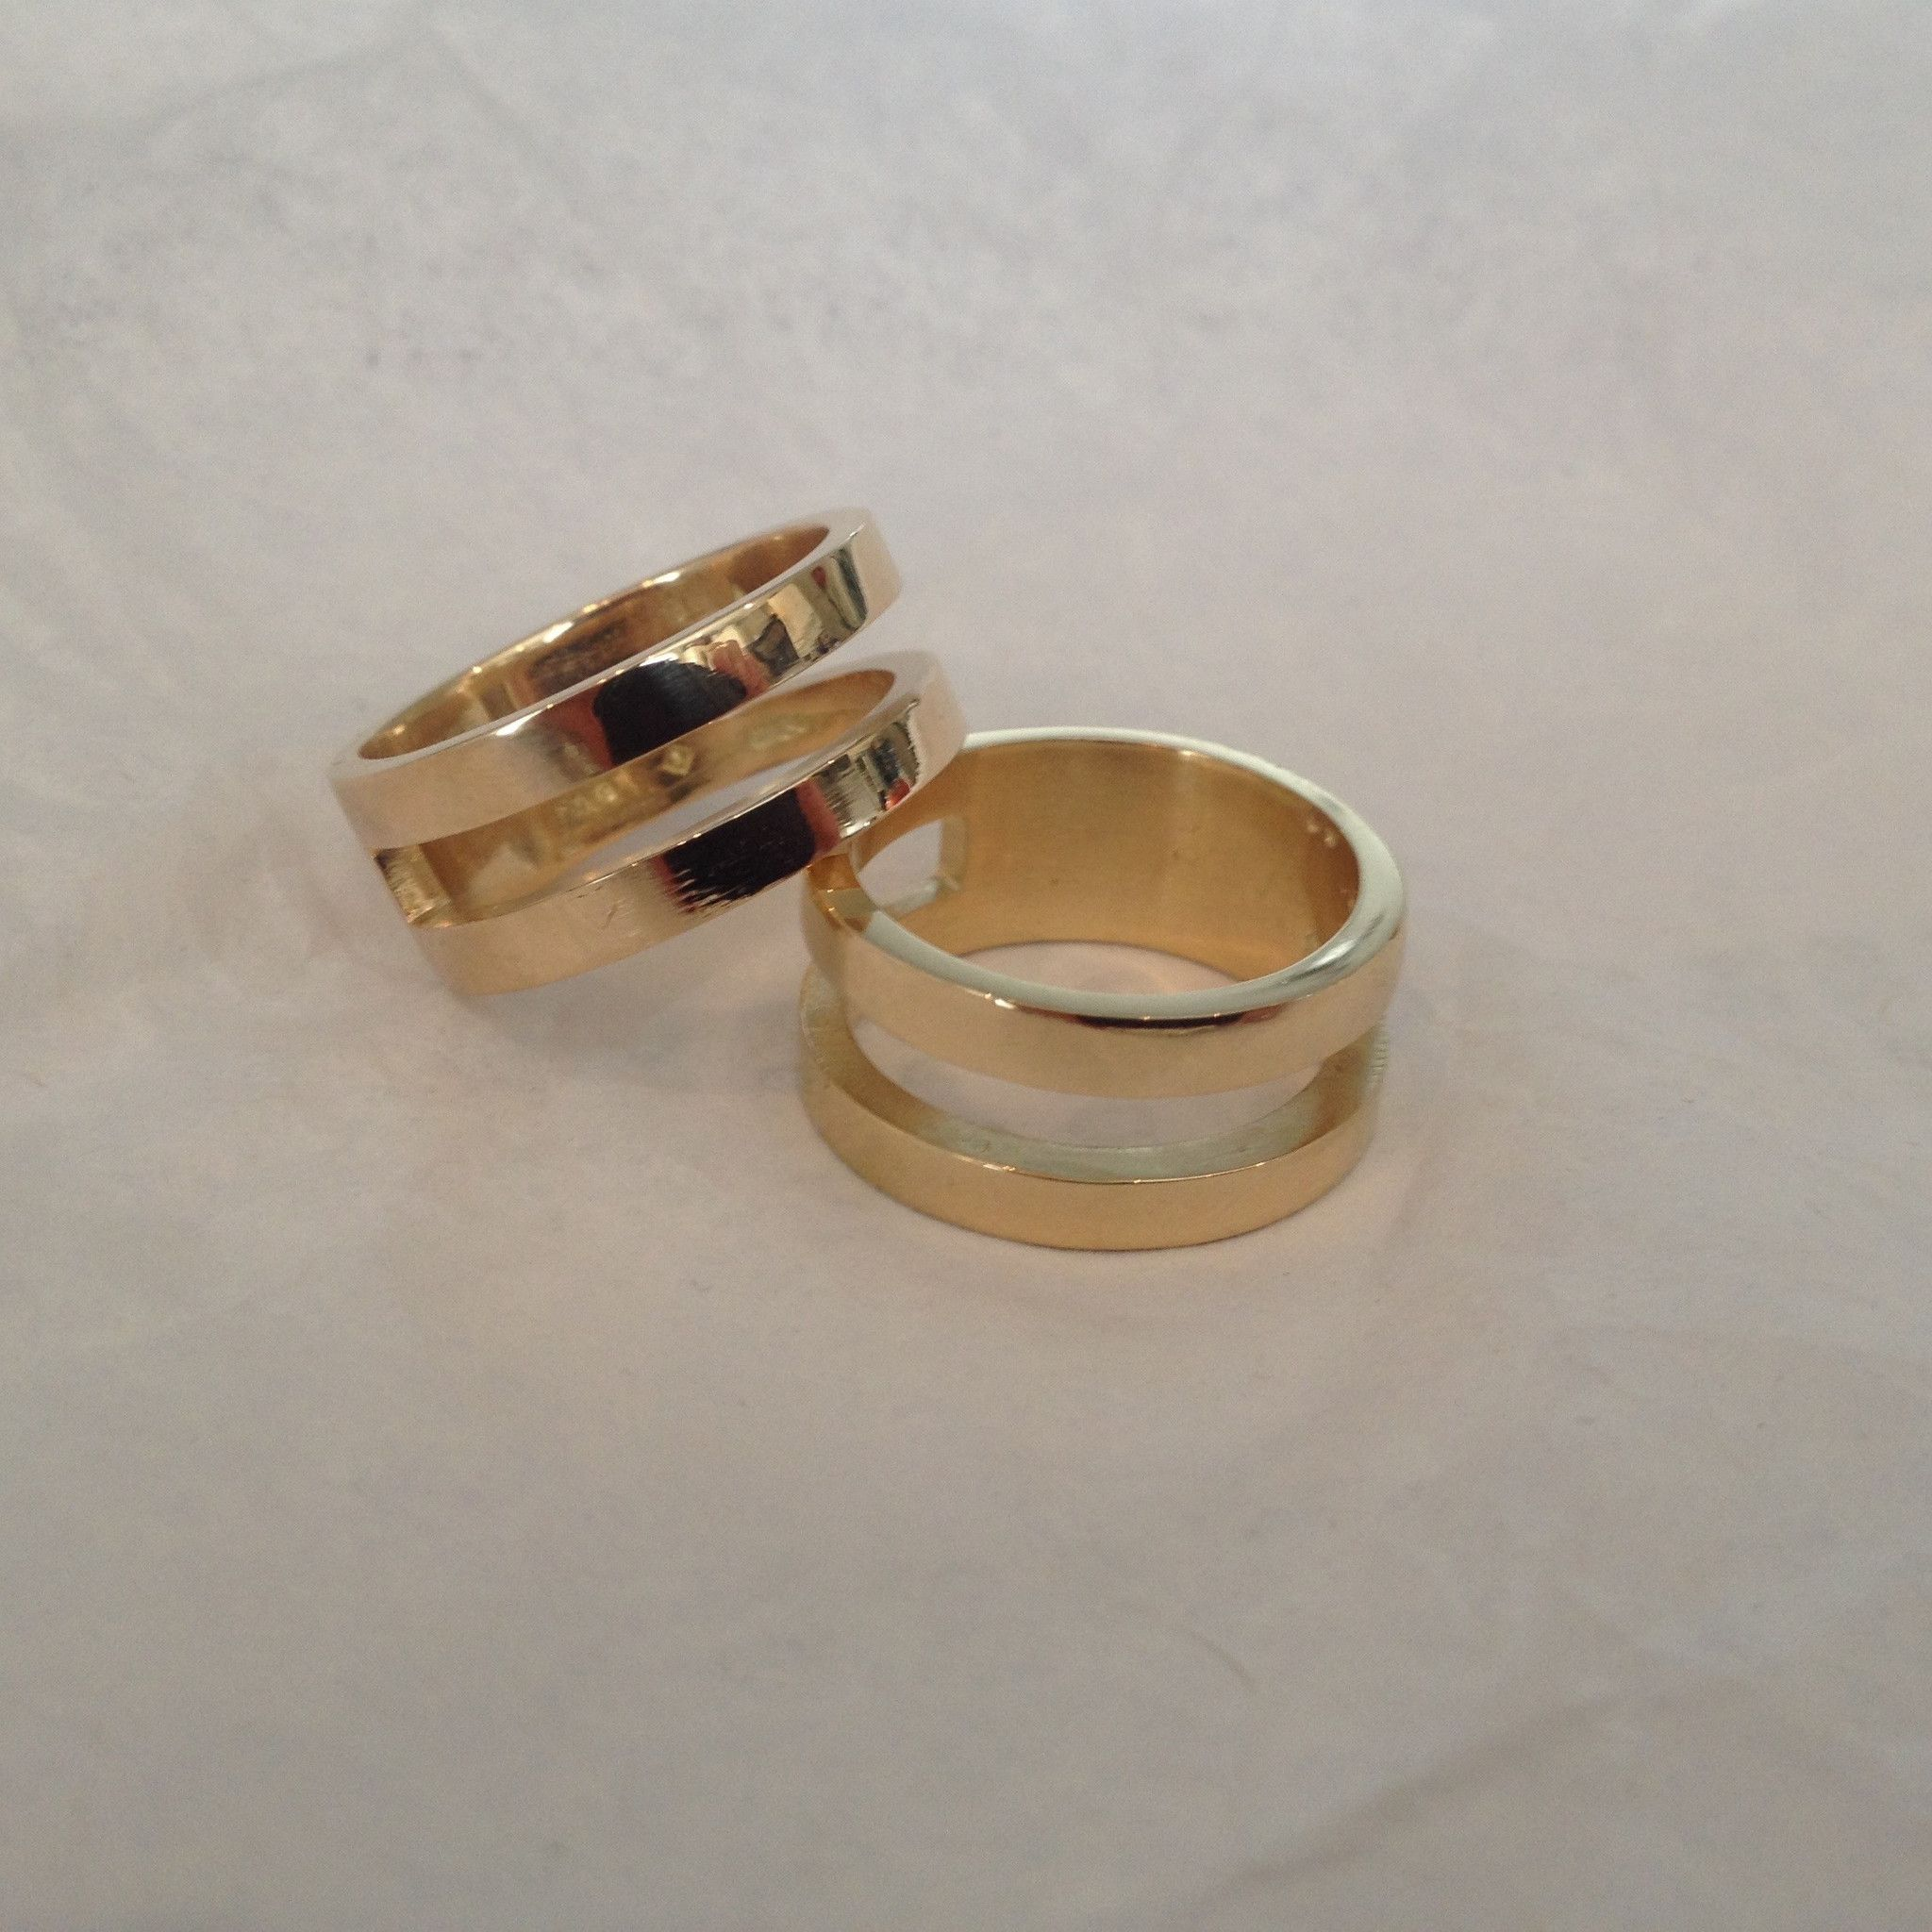 Parallel Ring 14ct Gold Ring sizes chart, Today gold